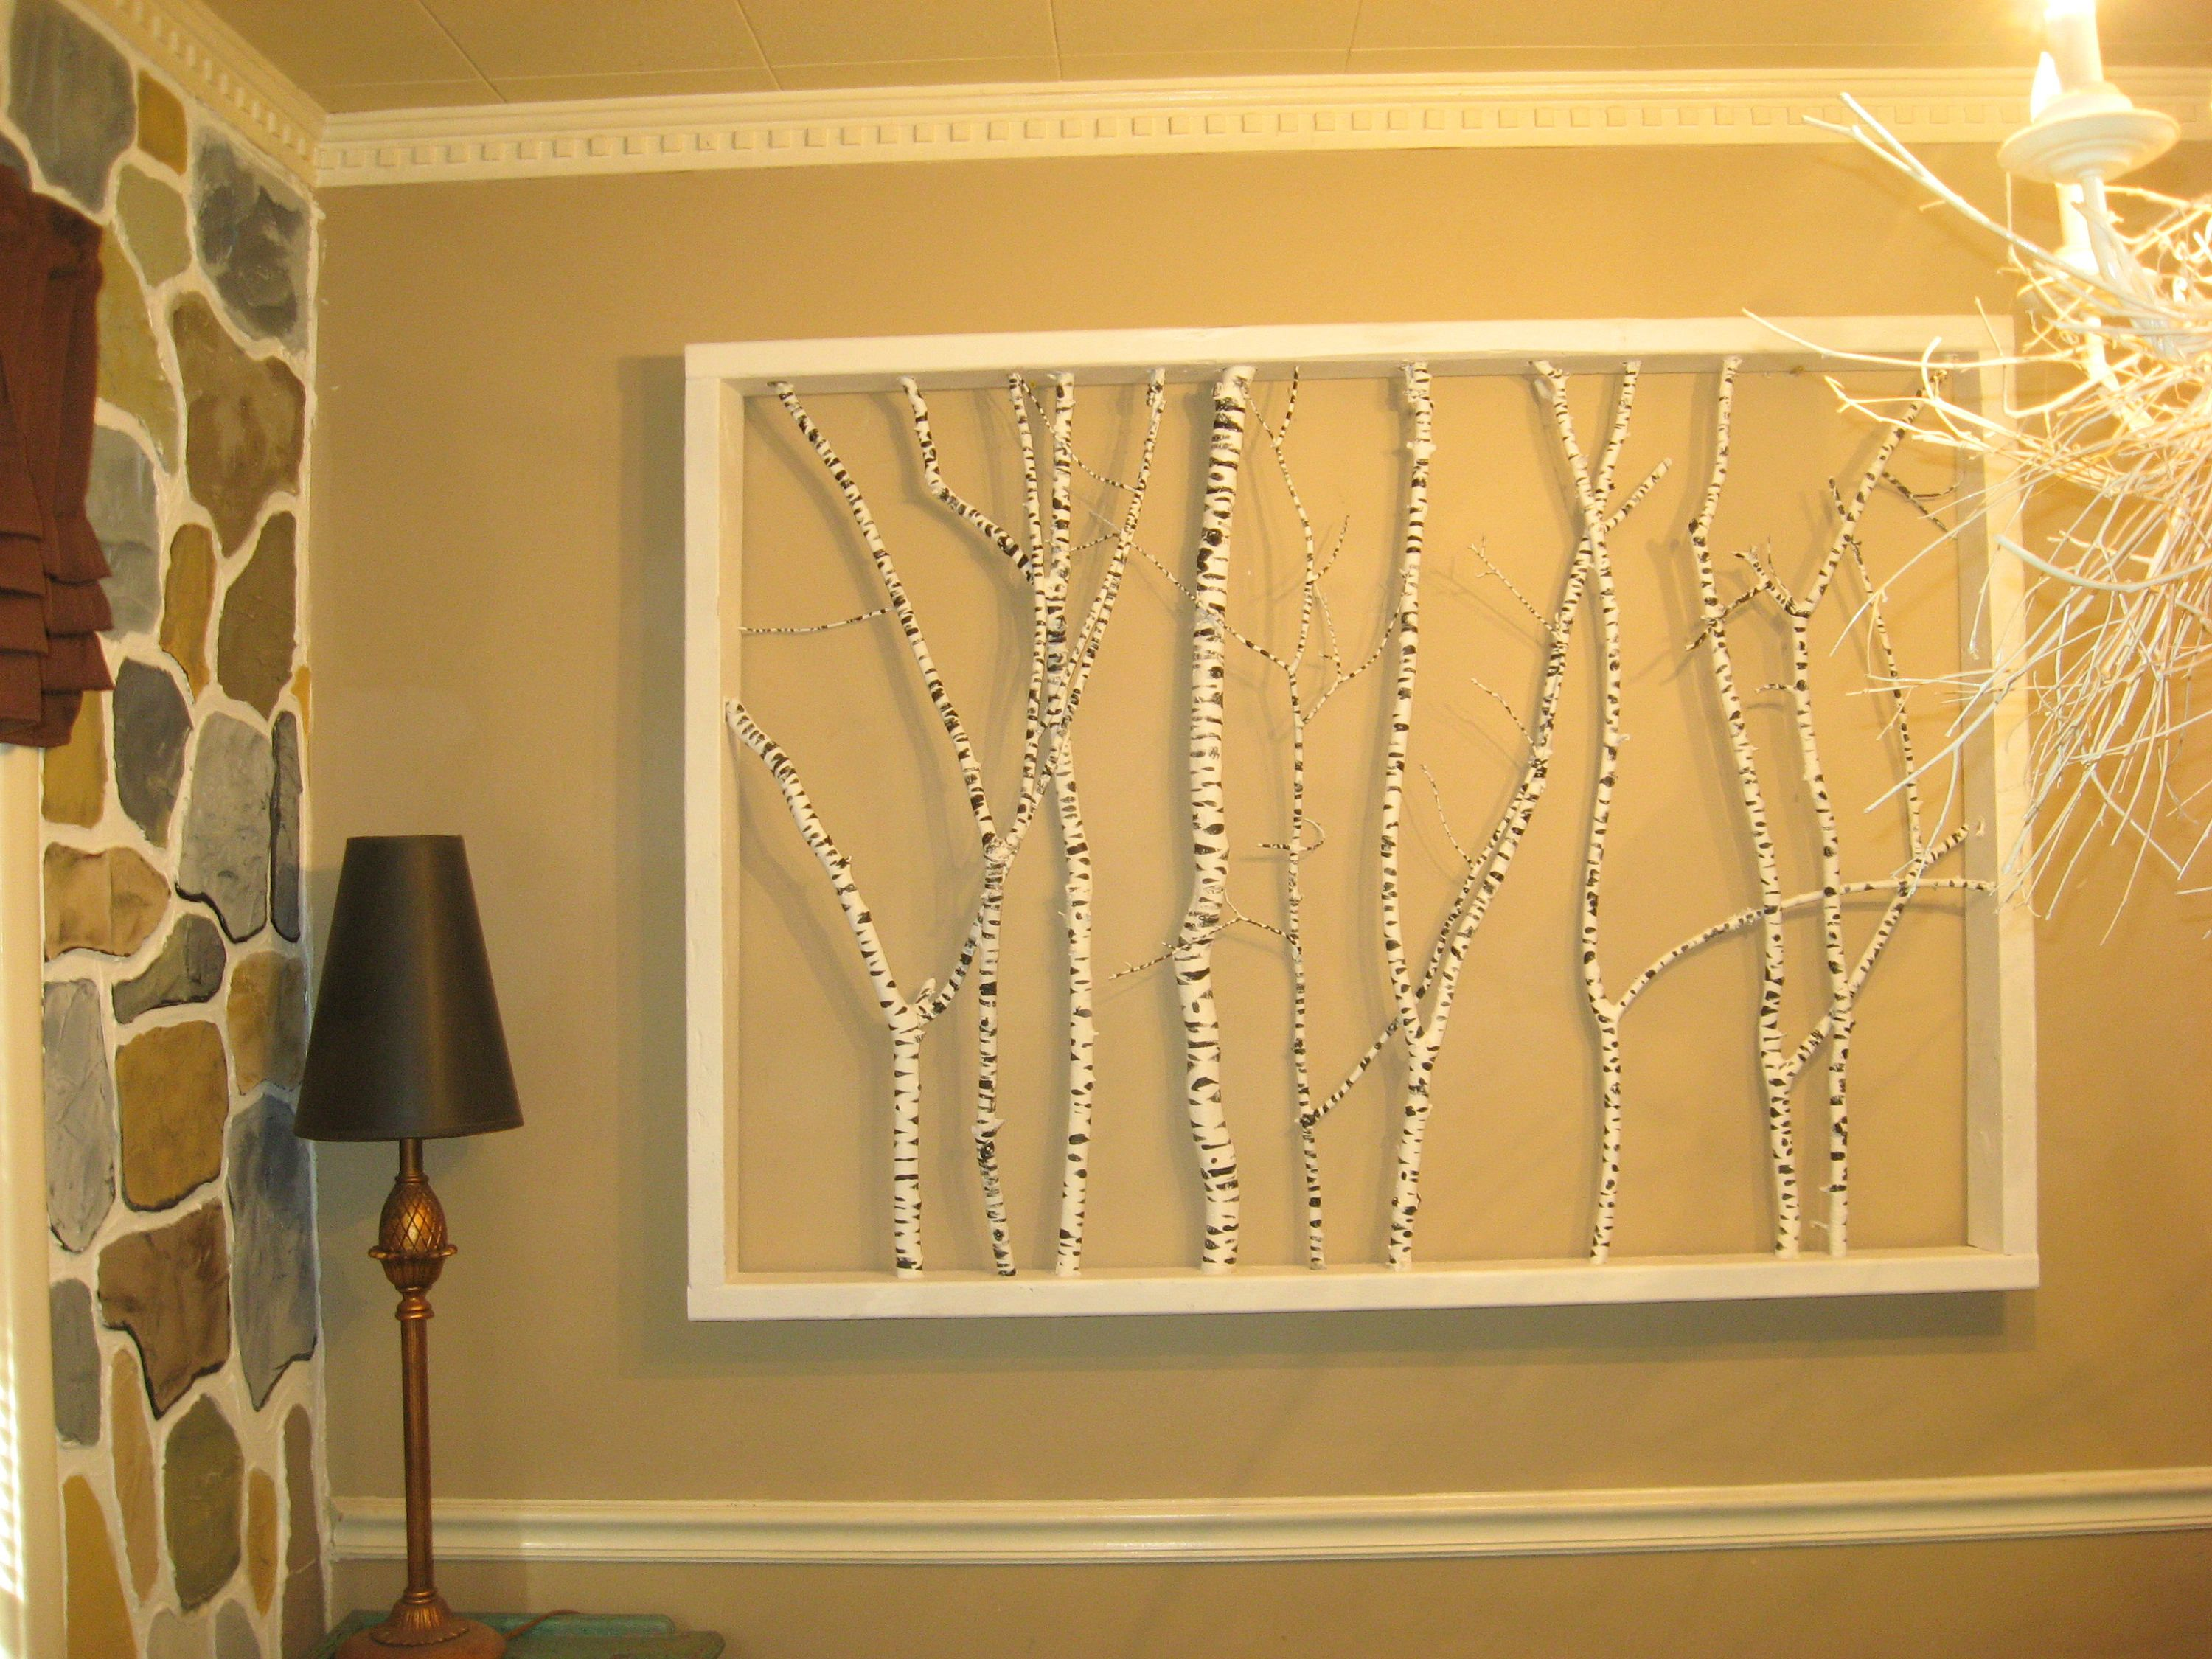 Magnificent Knitted Wall Decorations Pictures Inspiration - The Wall ...